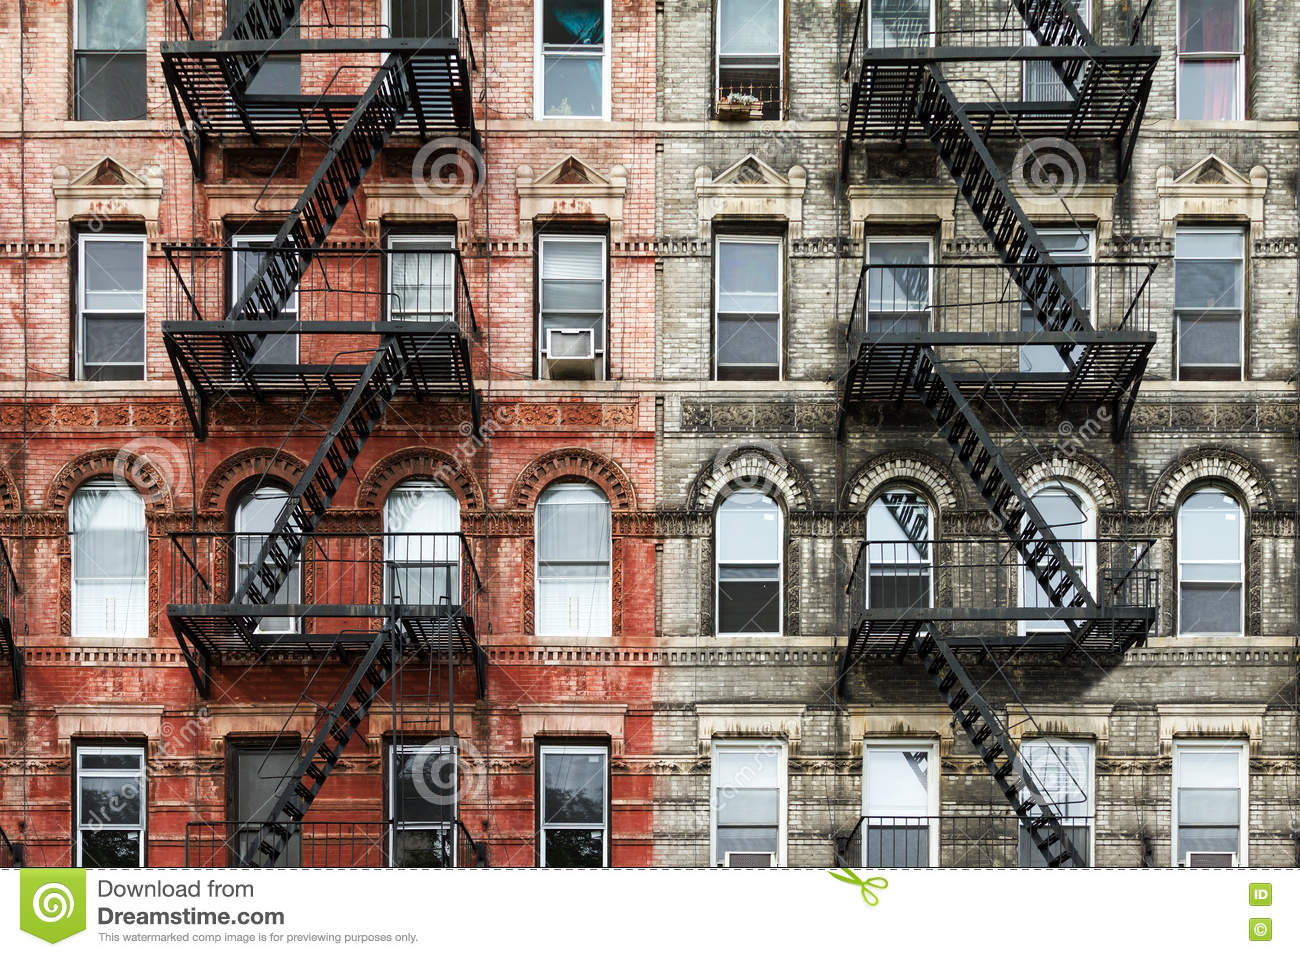 Old Brick Apartment Buildings in New York City